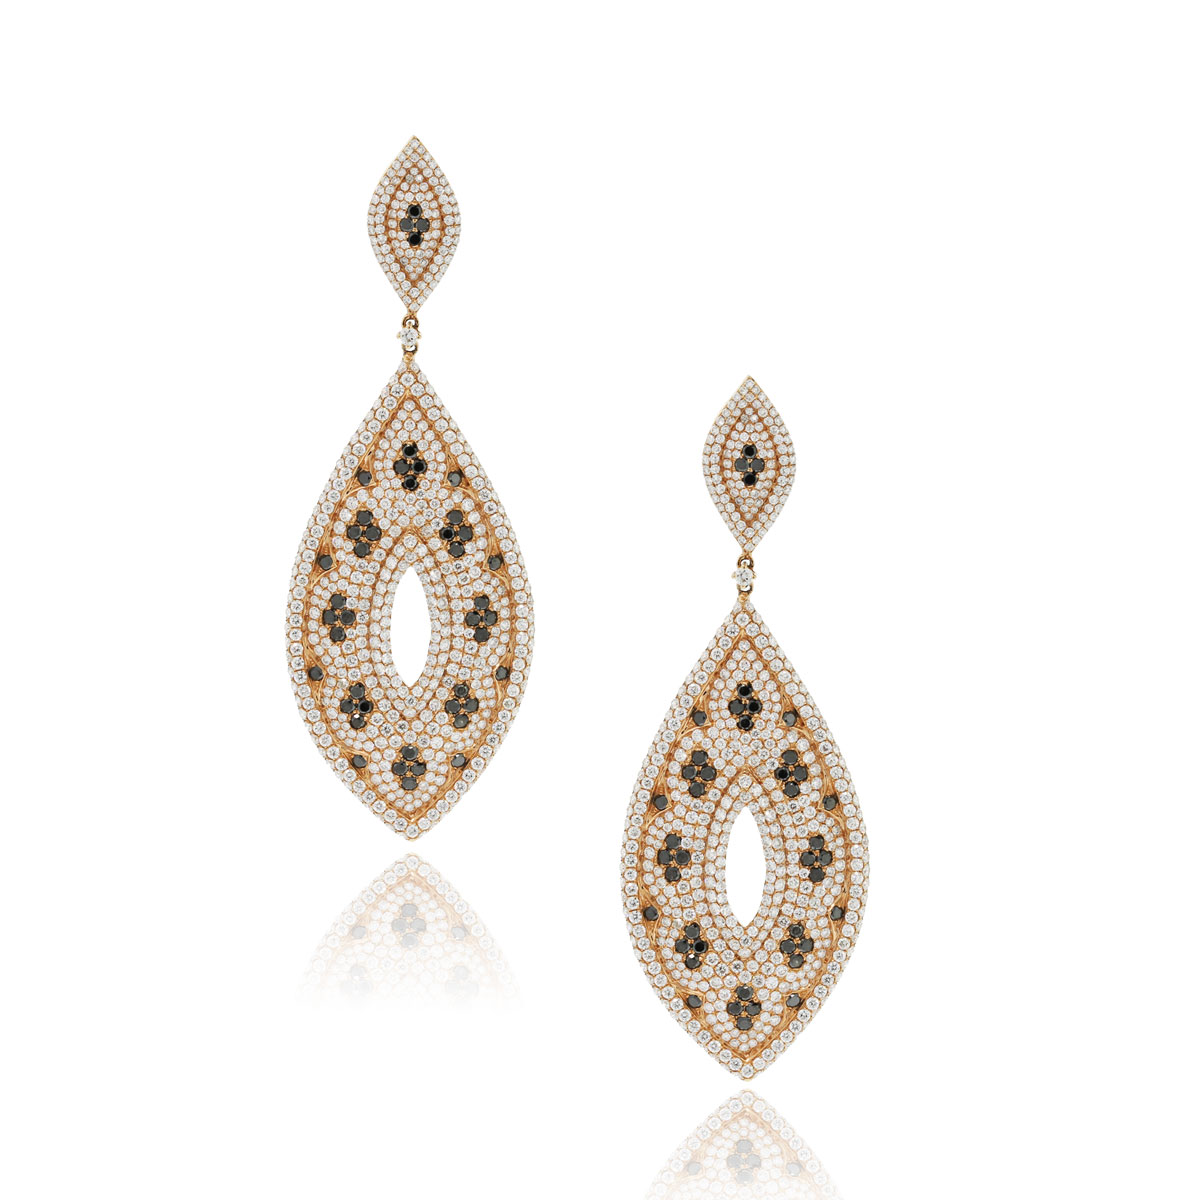 Where To Buy Chanel Earrings Online